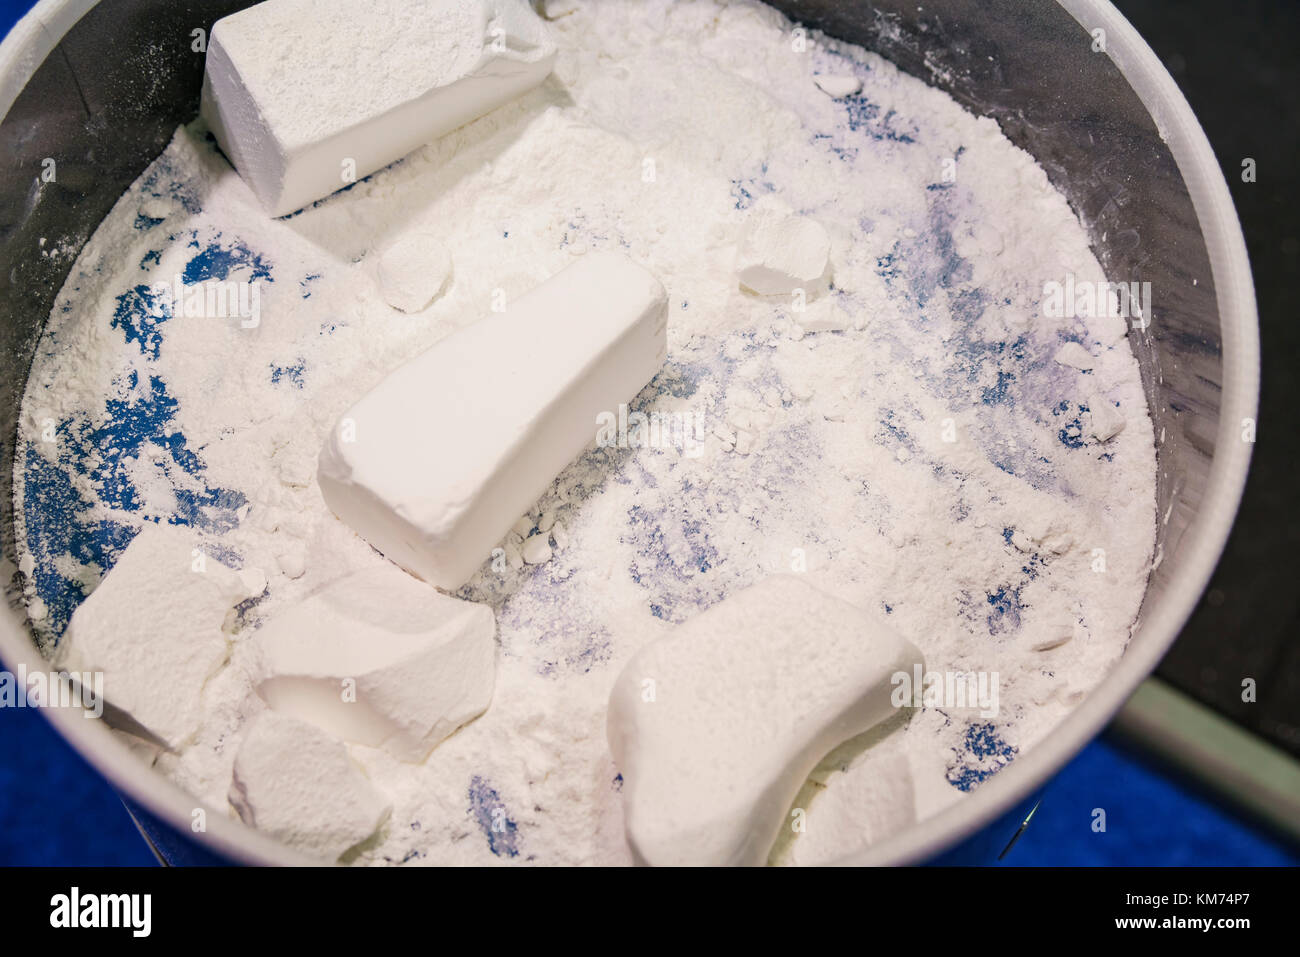 Anaheim, NOV 30: 2017 Magnesium powder of International Weightlifting Federation World Championships on NOV 30, - Stock Image